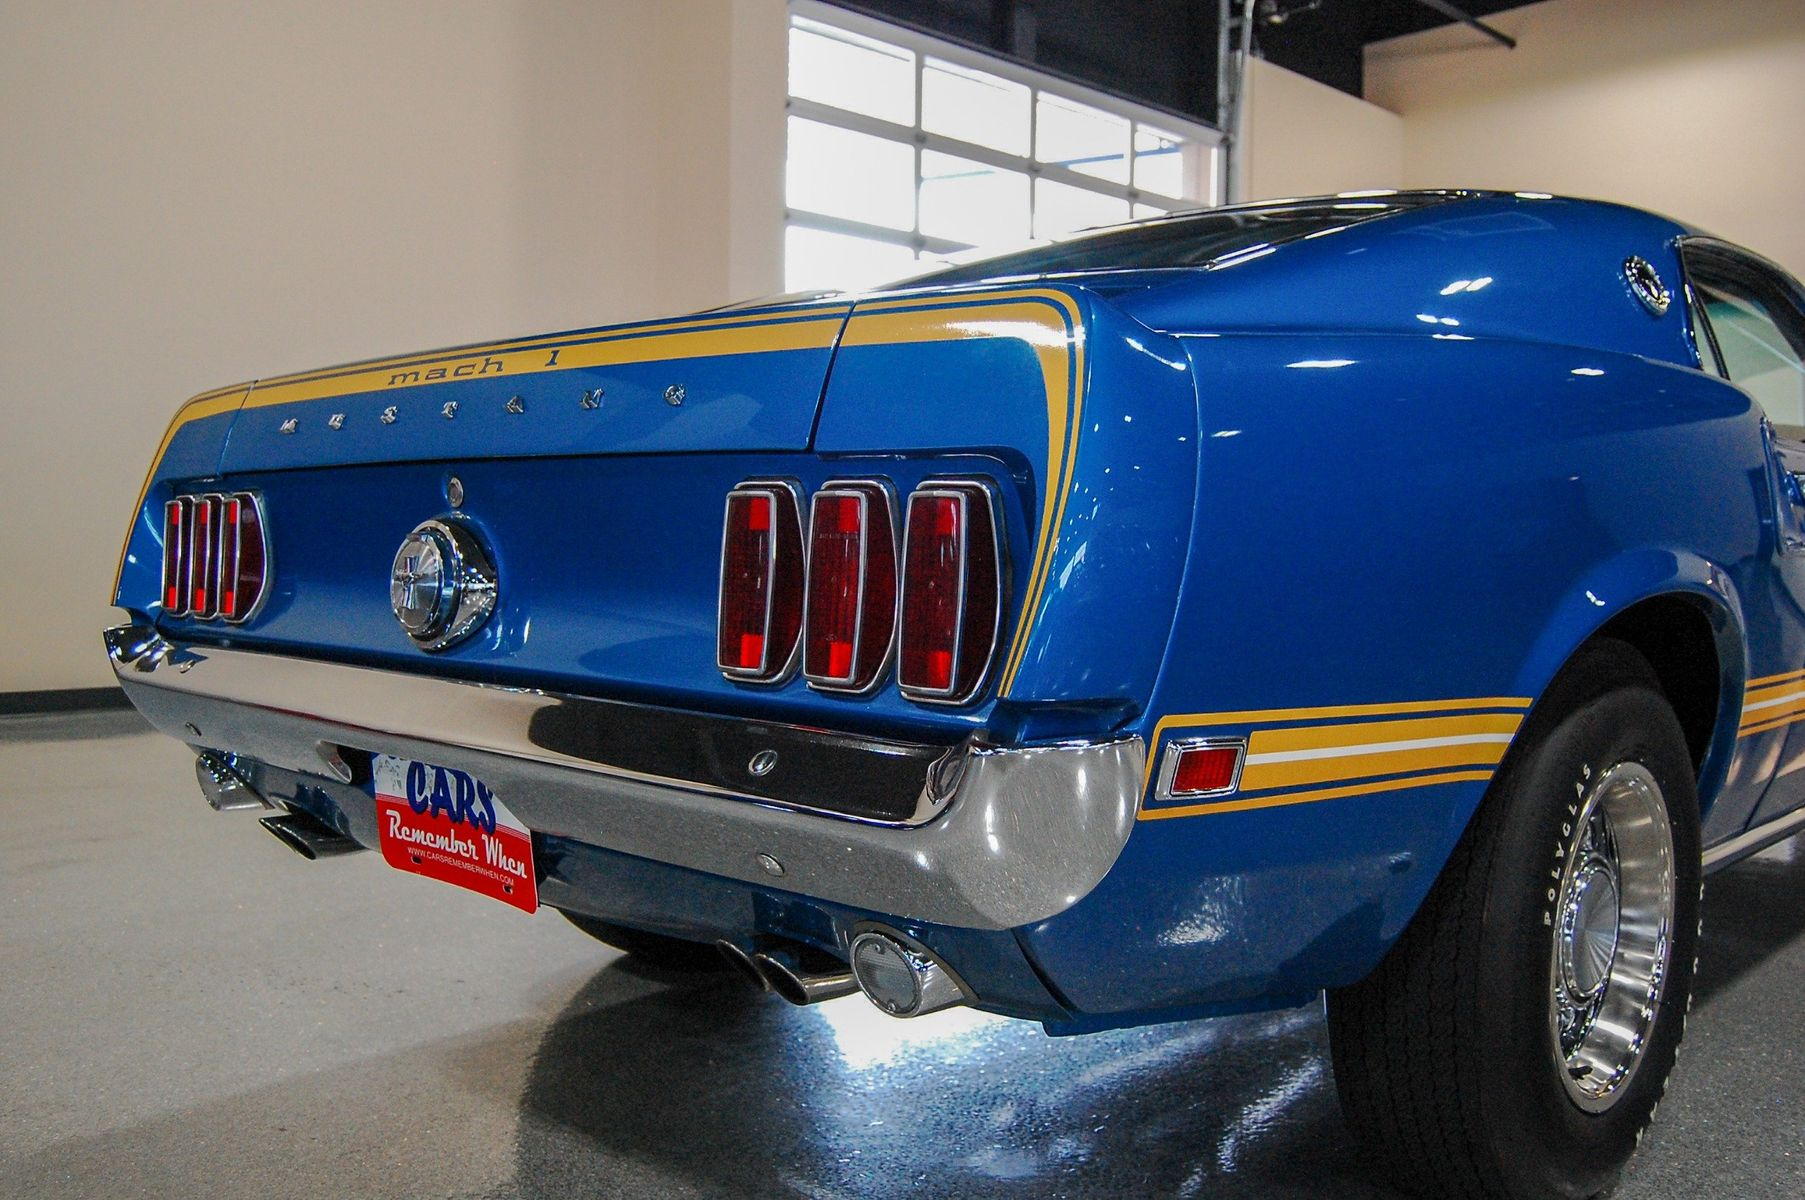 1969 Ford Mustang Mach 1 Reduced Price For Sale